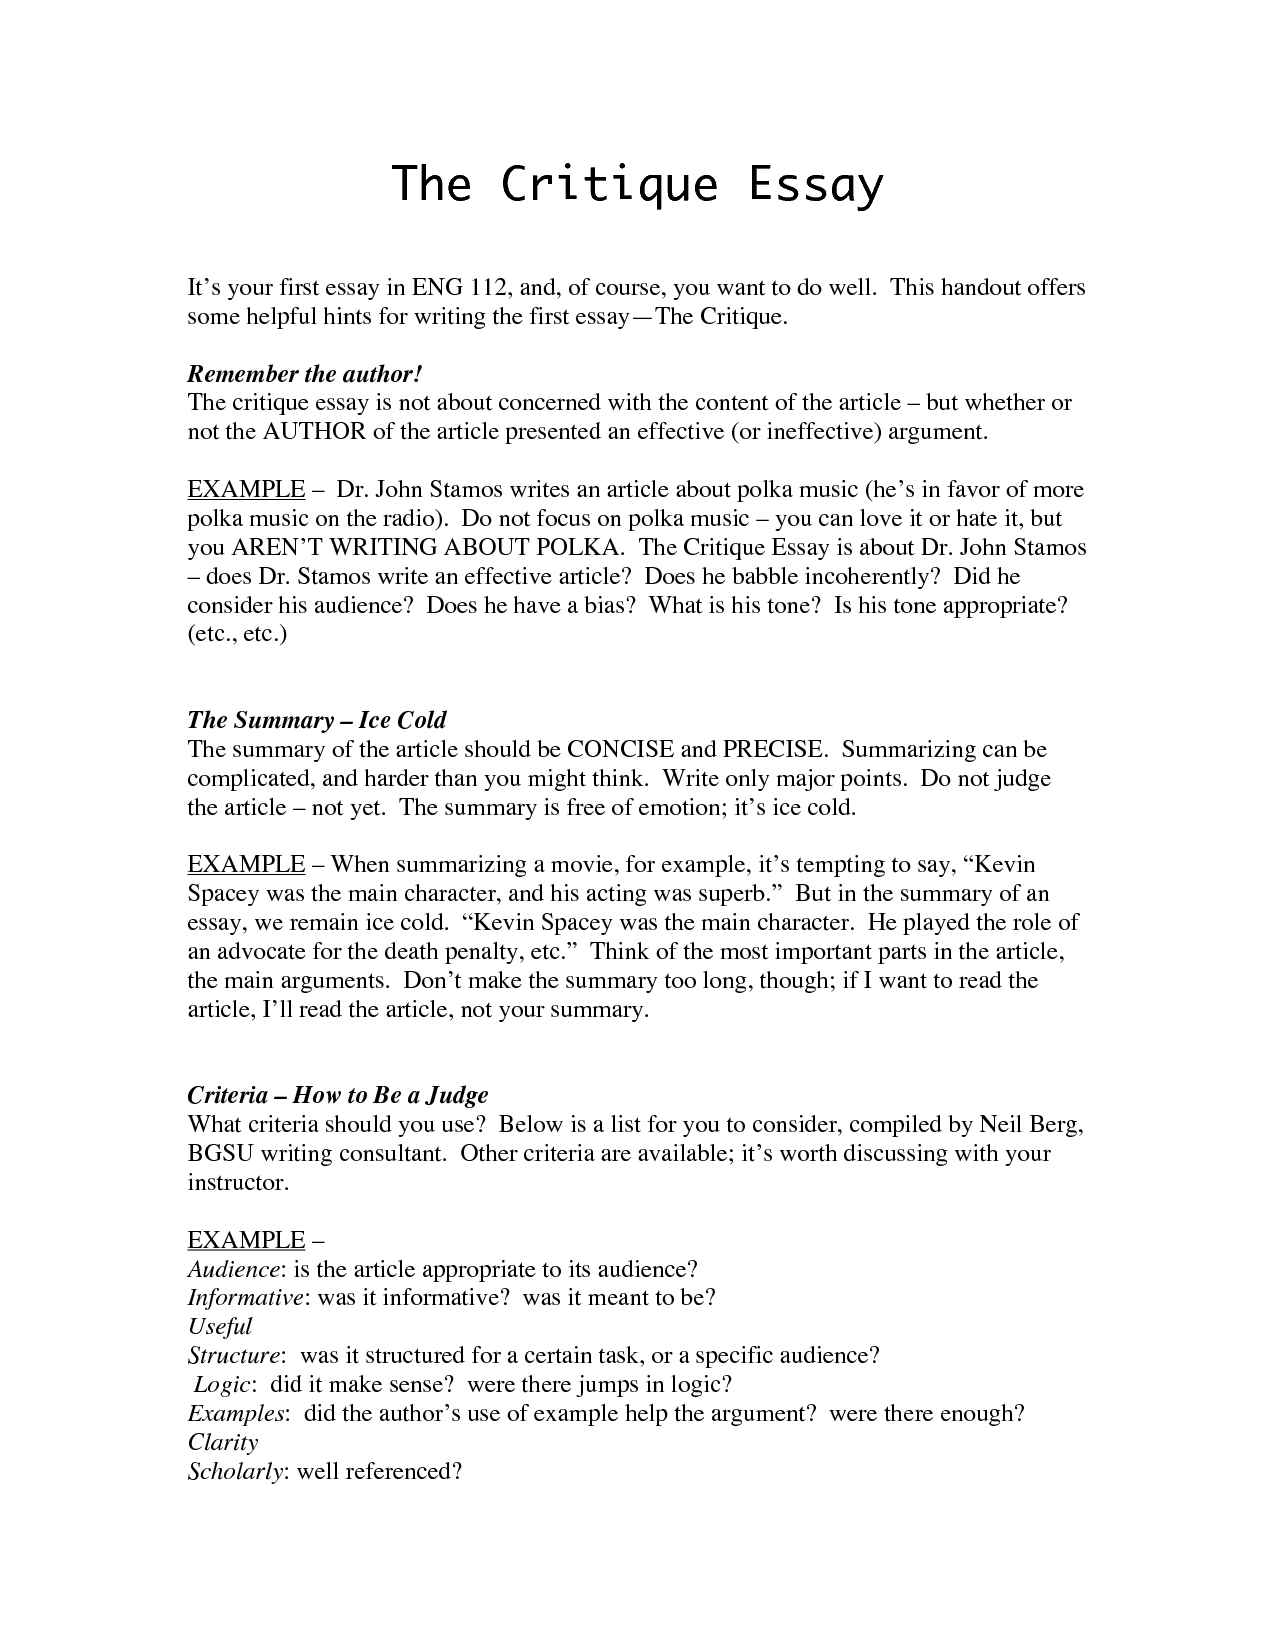 005 Thematic Essay Format Critiqueple Nationalismples Of On Kingdom